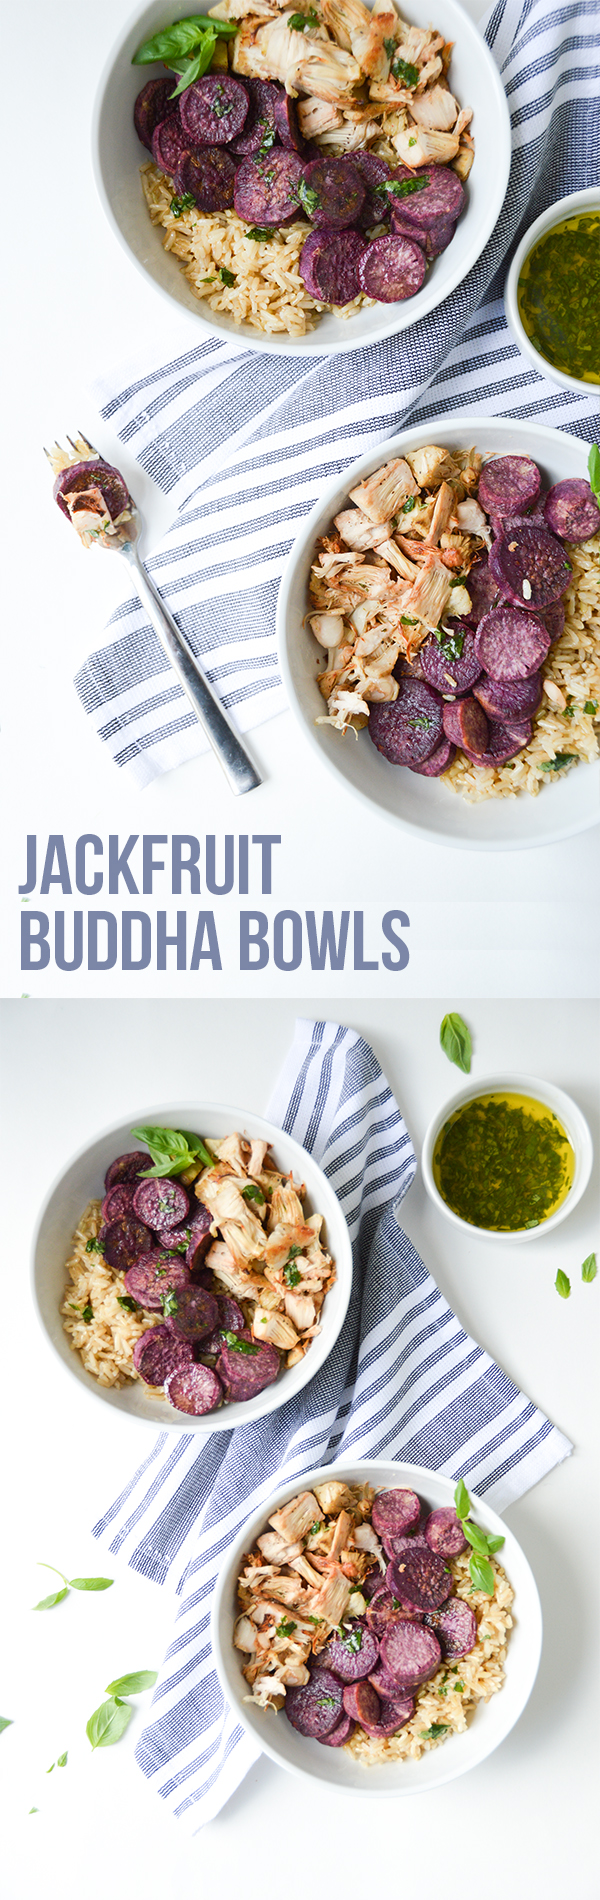 This jackfruit buddha bowl recipe is unique yet simple, containing only six ingredients.